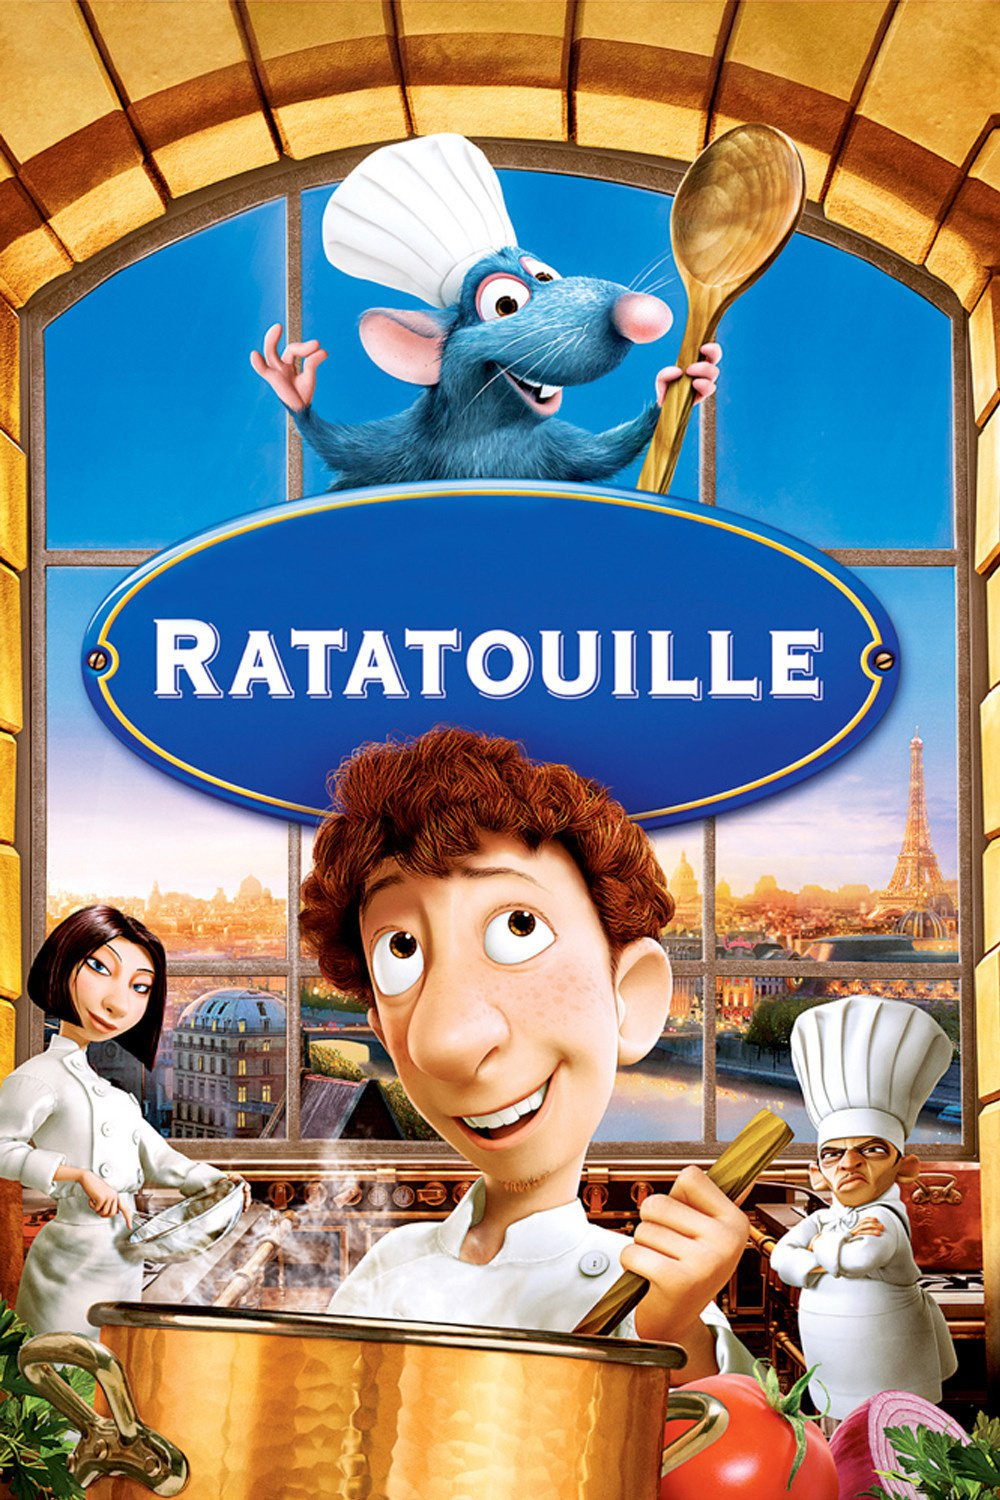 DISNEY RATATOUILLE POSTER He/'s Dying to Become a Chef